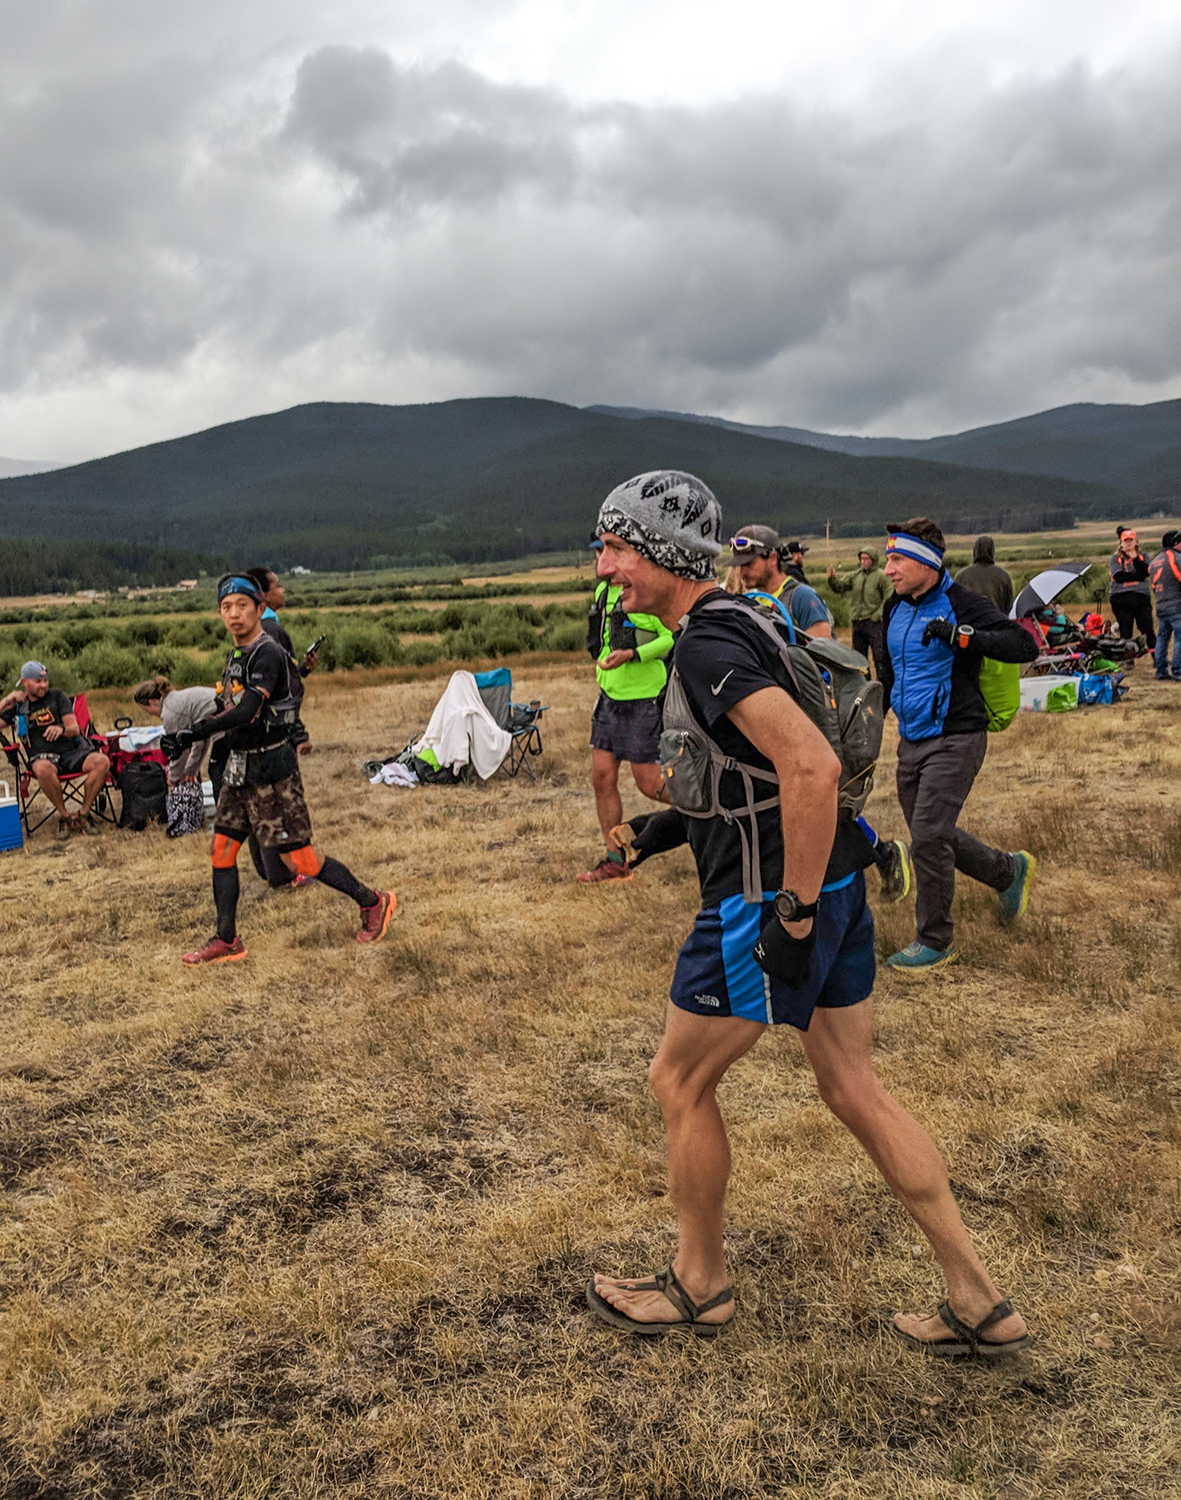 Heading out from an aid station.